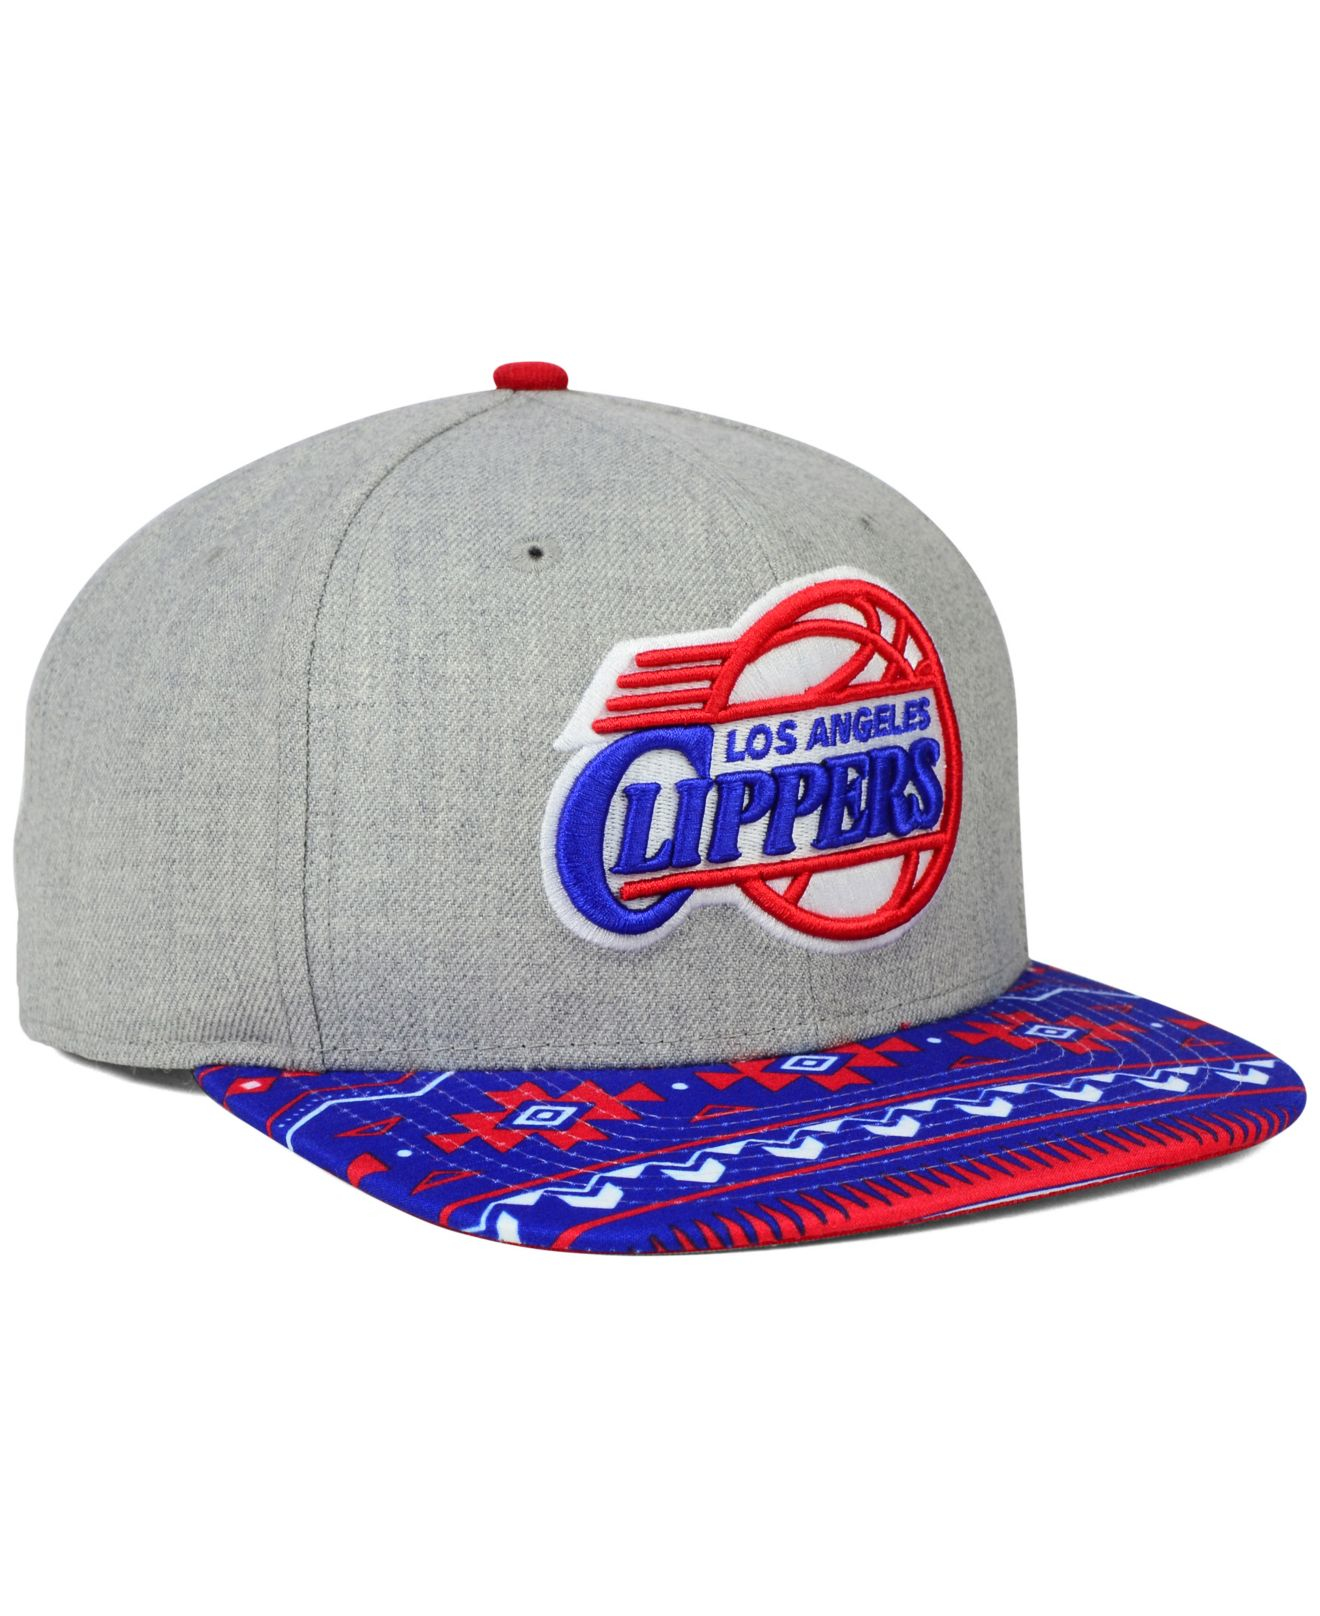 04c243ec350 where to buy lyst ktz los angeles clippers neon mashup 9fifty snapback cap  in 68010 91ea1